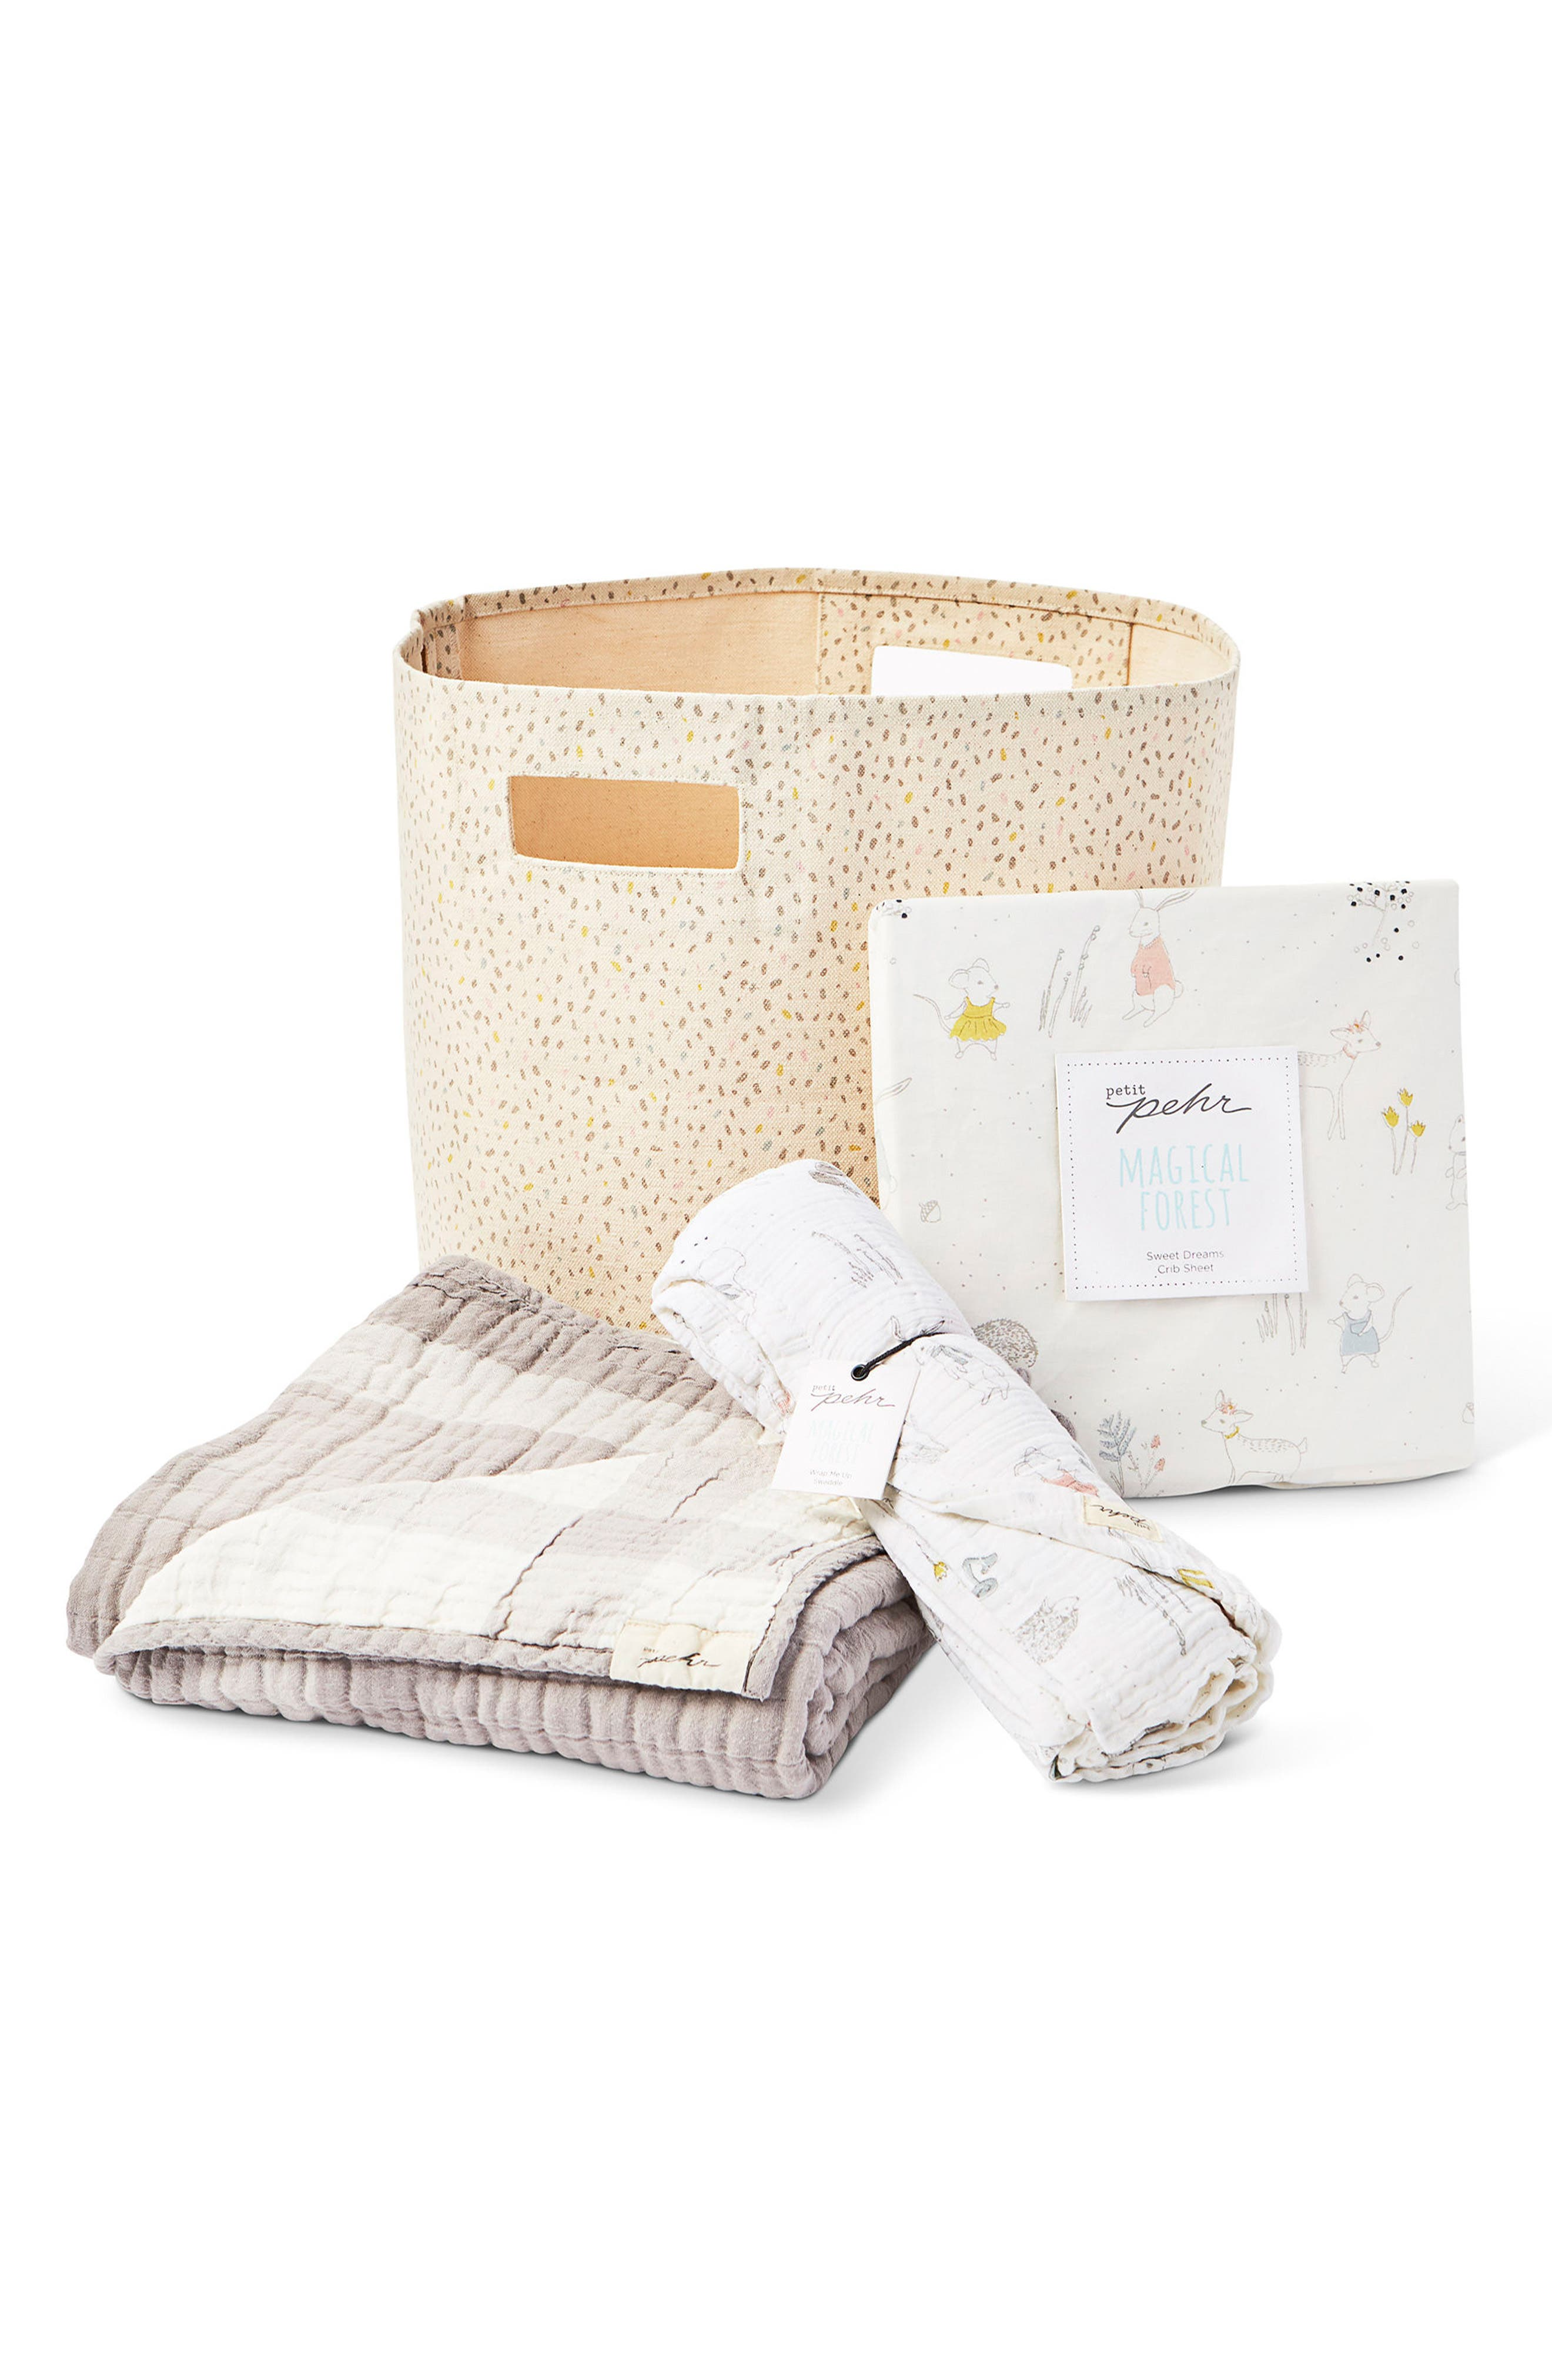 PEHR, Magical Forest Blanket, Crib Sheet, Swaddle & Bin Set, Main thumbnail 1, color, IVORY